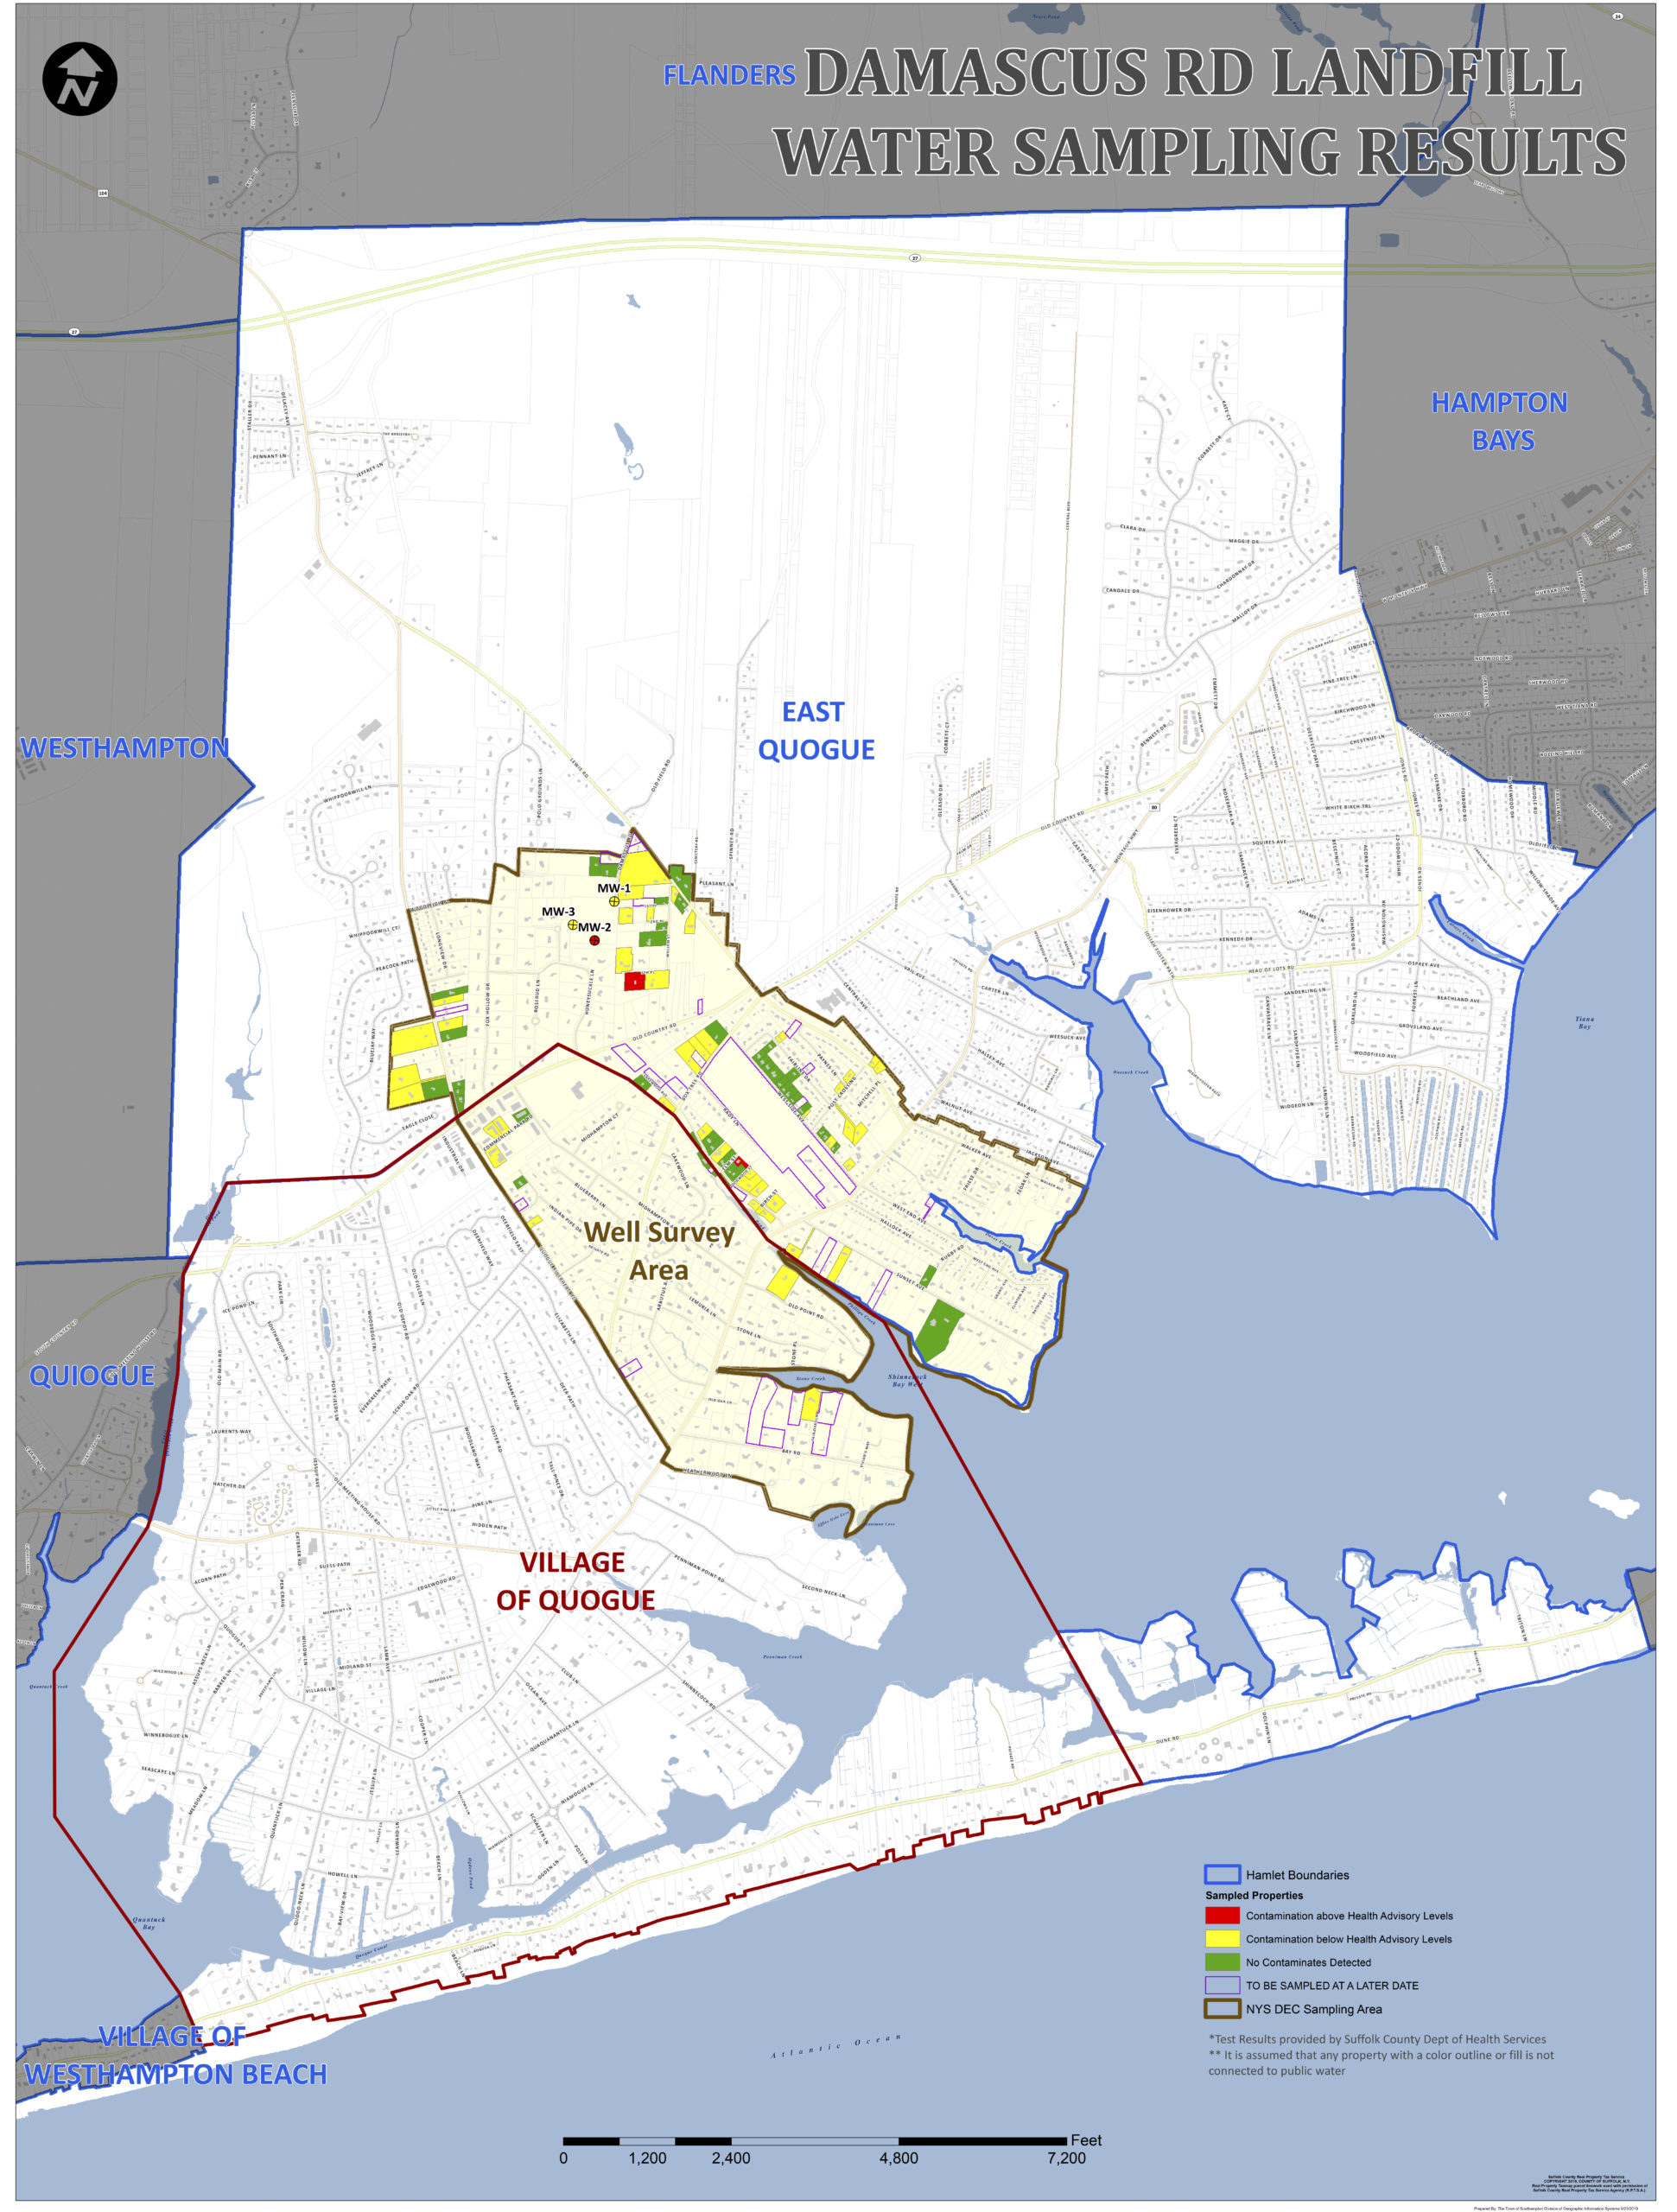 Some East Quogue and Quogue residents would be eligable for public water with the new amendment tp the  East Quogue Public Drinking Water Infrastructure Improvement Program.